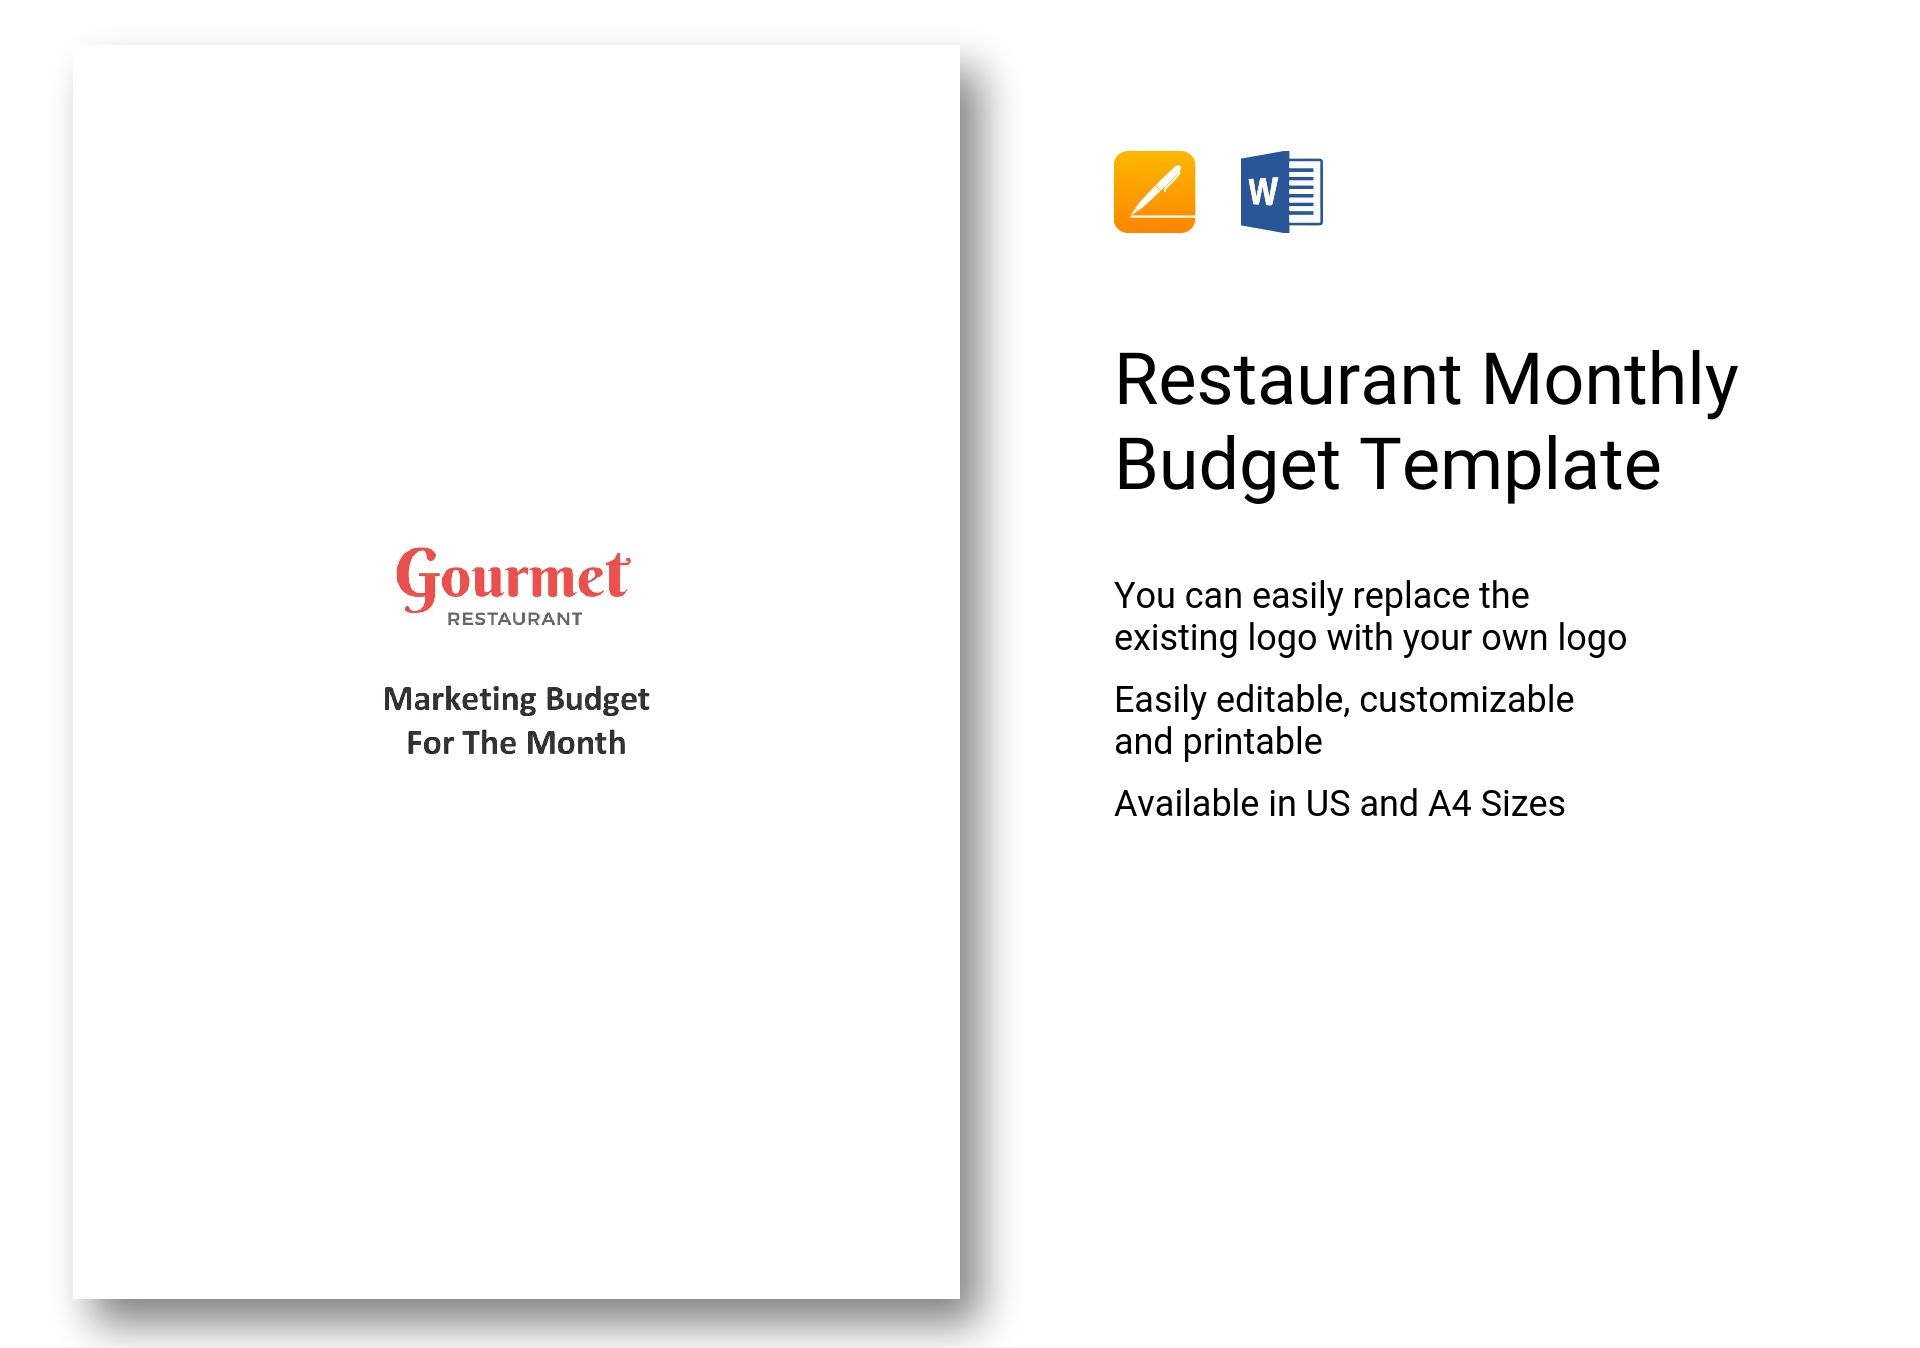 Restaurant Monthly Budget Template In Word Apple Pages